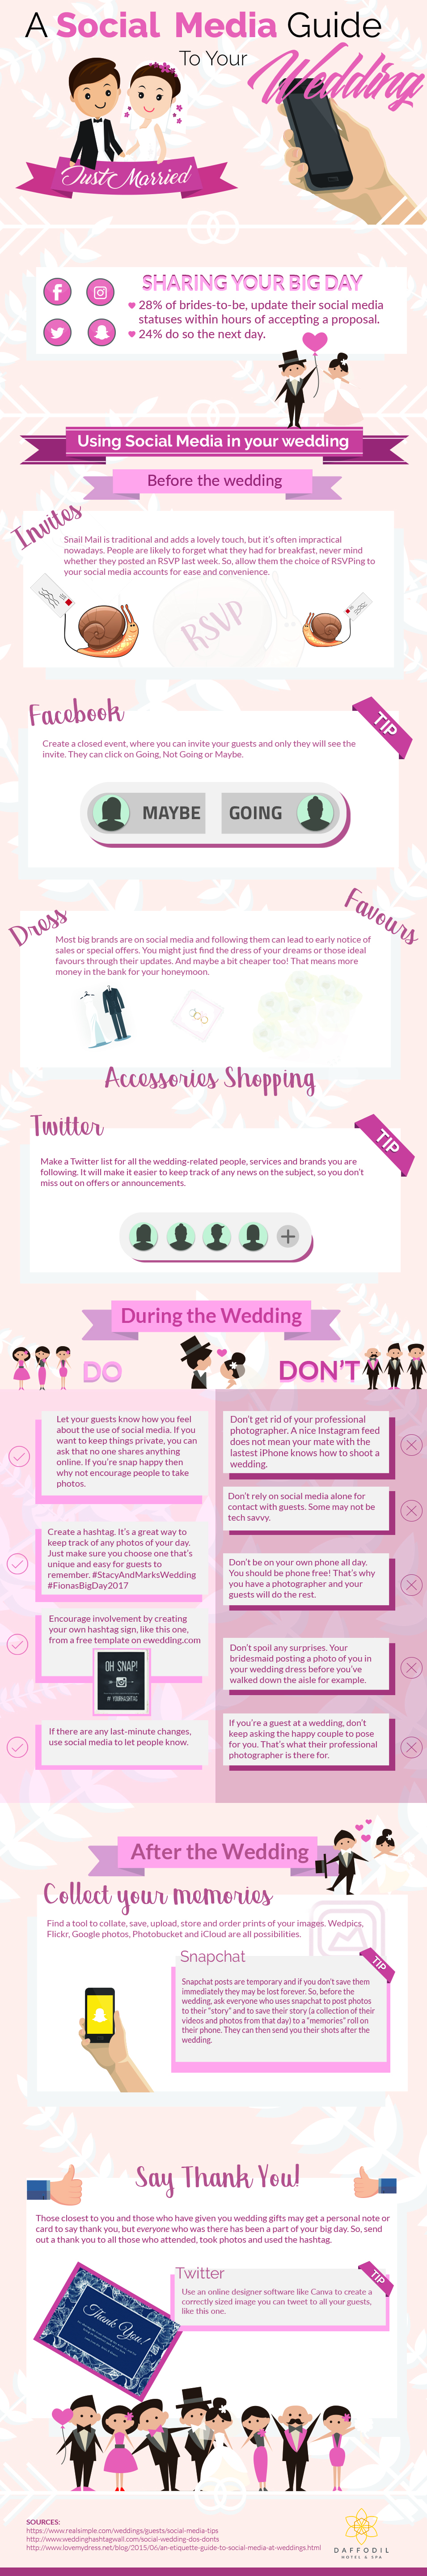 A Social Media Guide For Your Big Day - Infographic